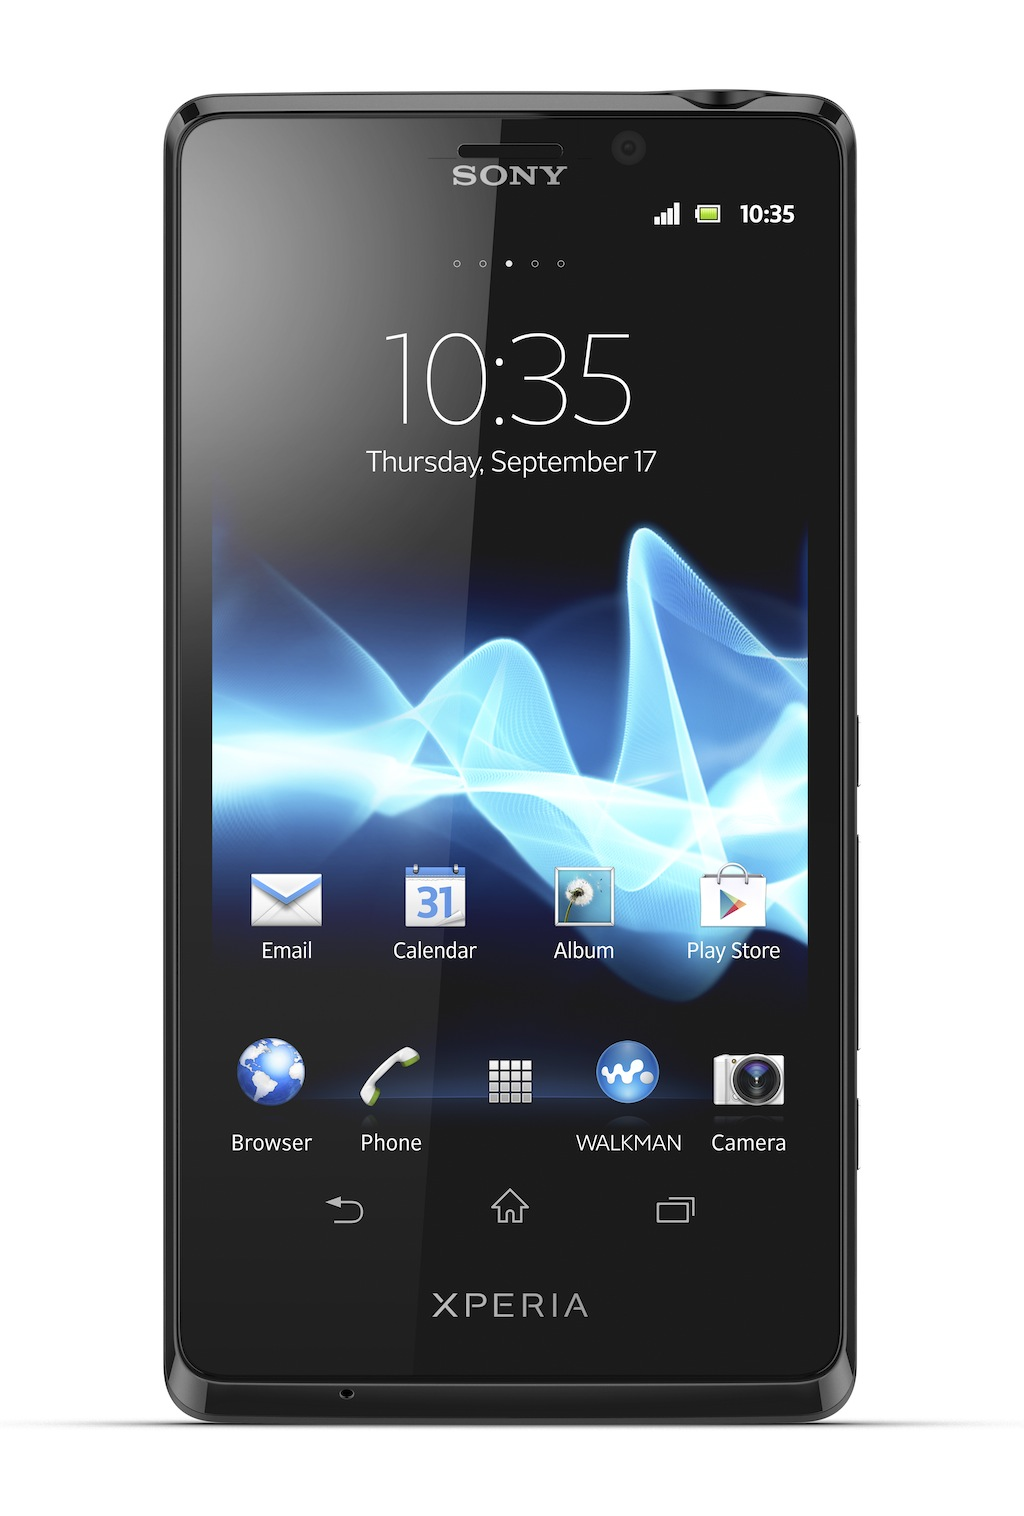 "The Xperia T measures 5.09"" x 0.37"" x 2.65"" and weighs 0.31 pounds."